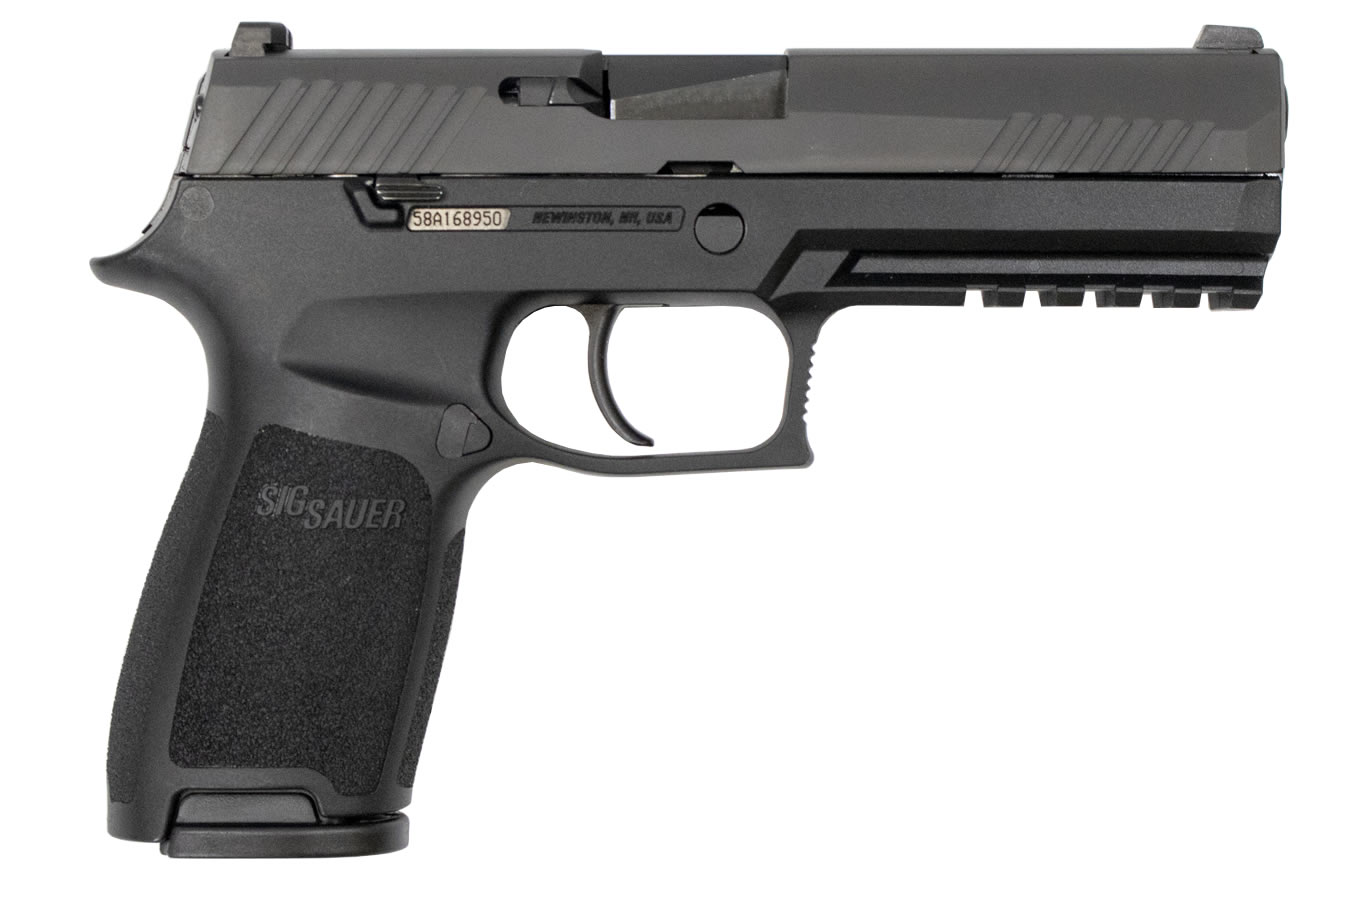 P320 FULL-SIZE 9MM WITH CONTRAST SIGHTS